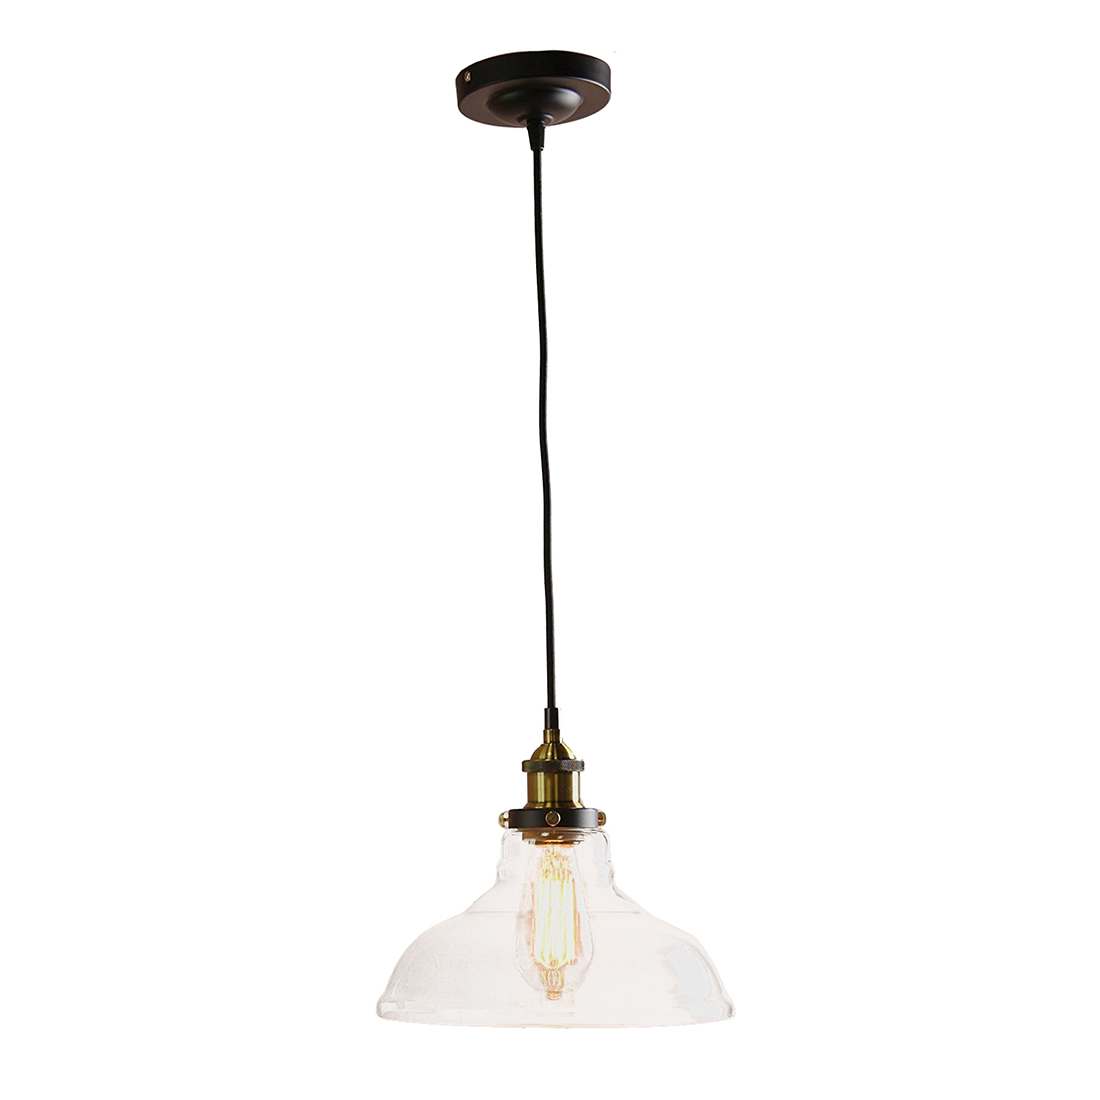 Vintage Industrial 1 Light Iron Body Glass Shade Loft Coffee Bar Kitchen cover Chandeliers Hanging Pendant Lamp Light<br>